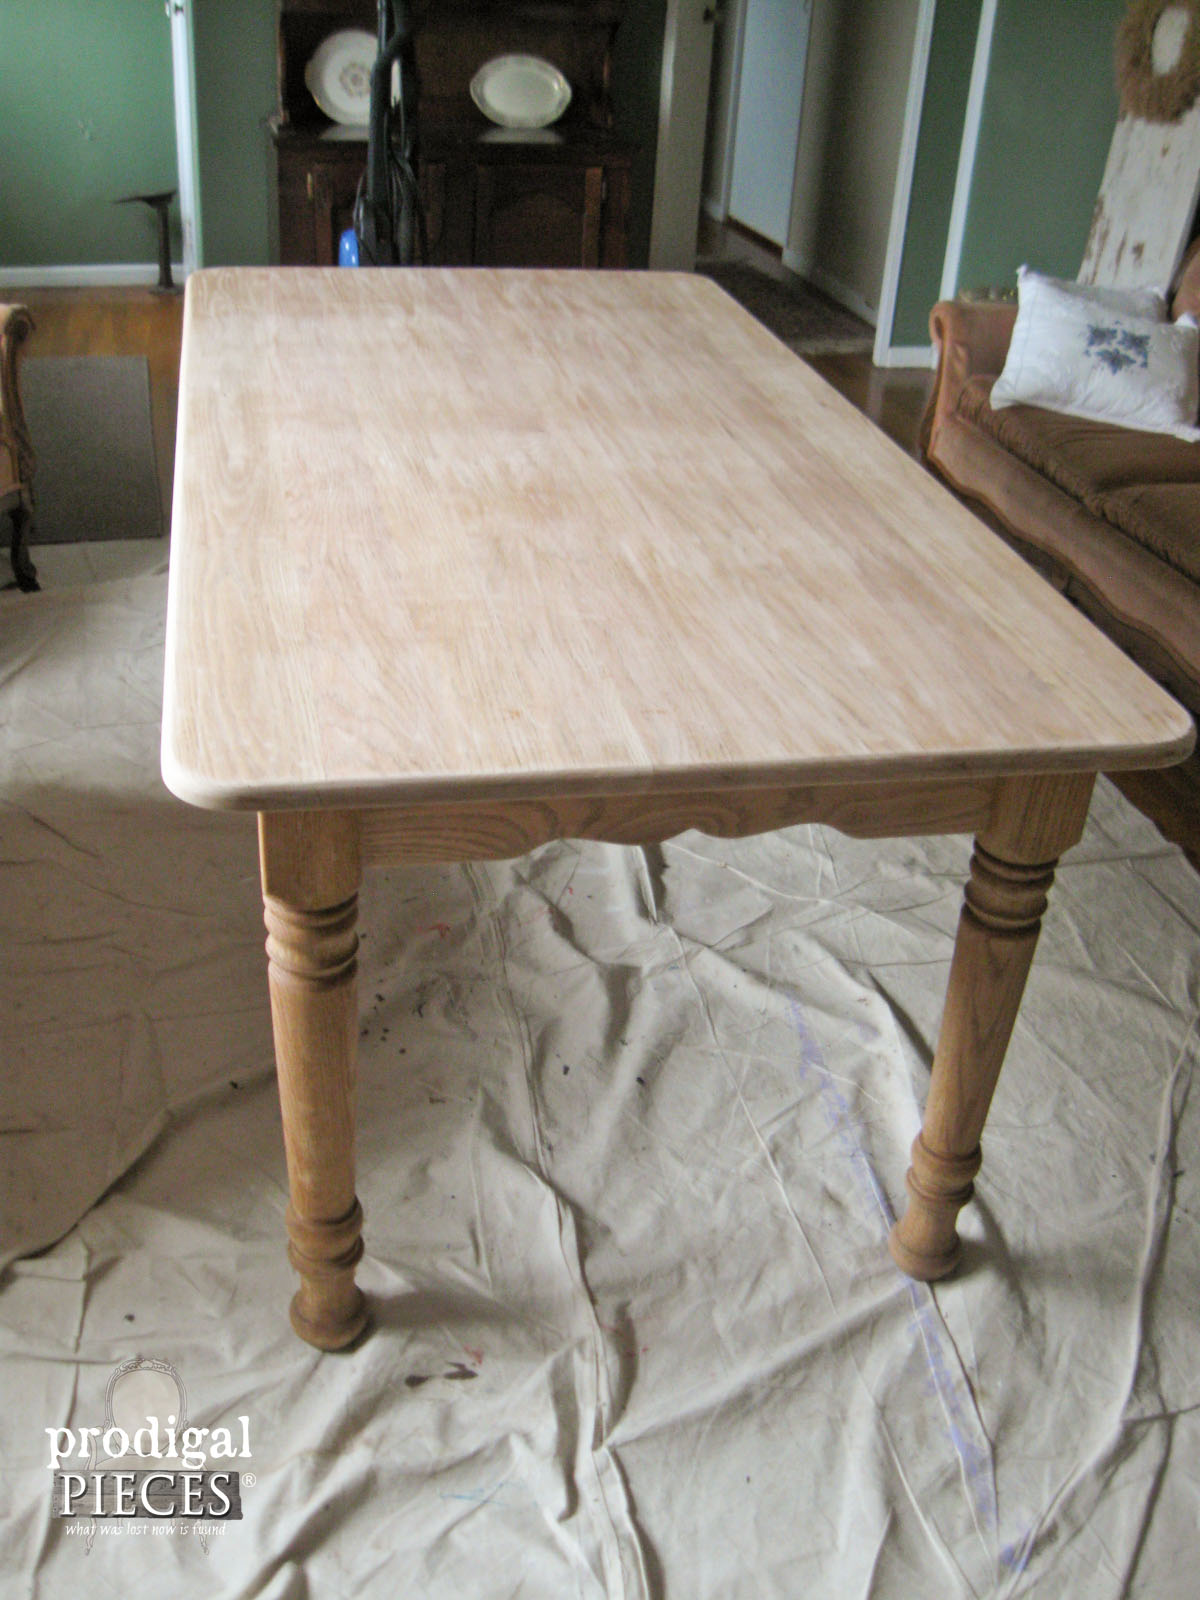 Elegant Farmhouse Table Sanded And Stripped For Whitewash | Prodigal Pieces |  Www.prodigalpieces.com